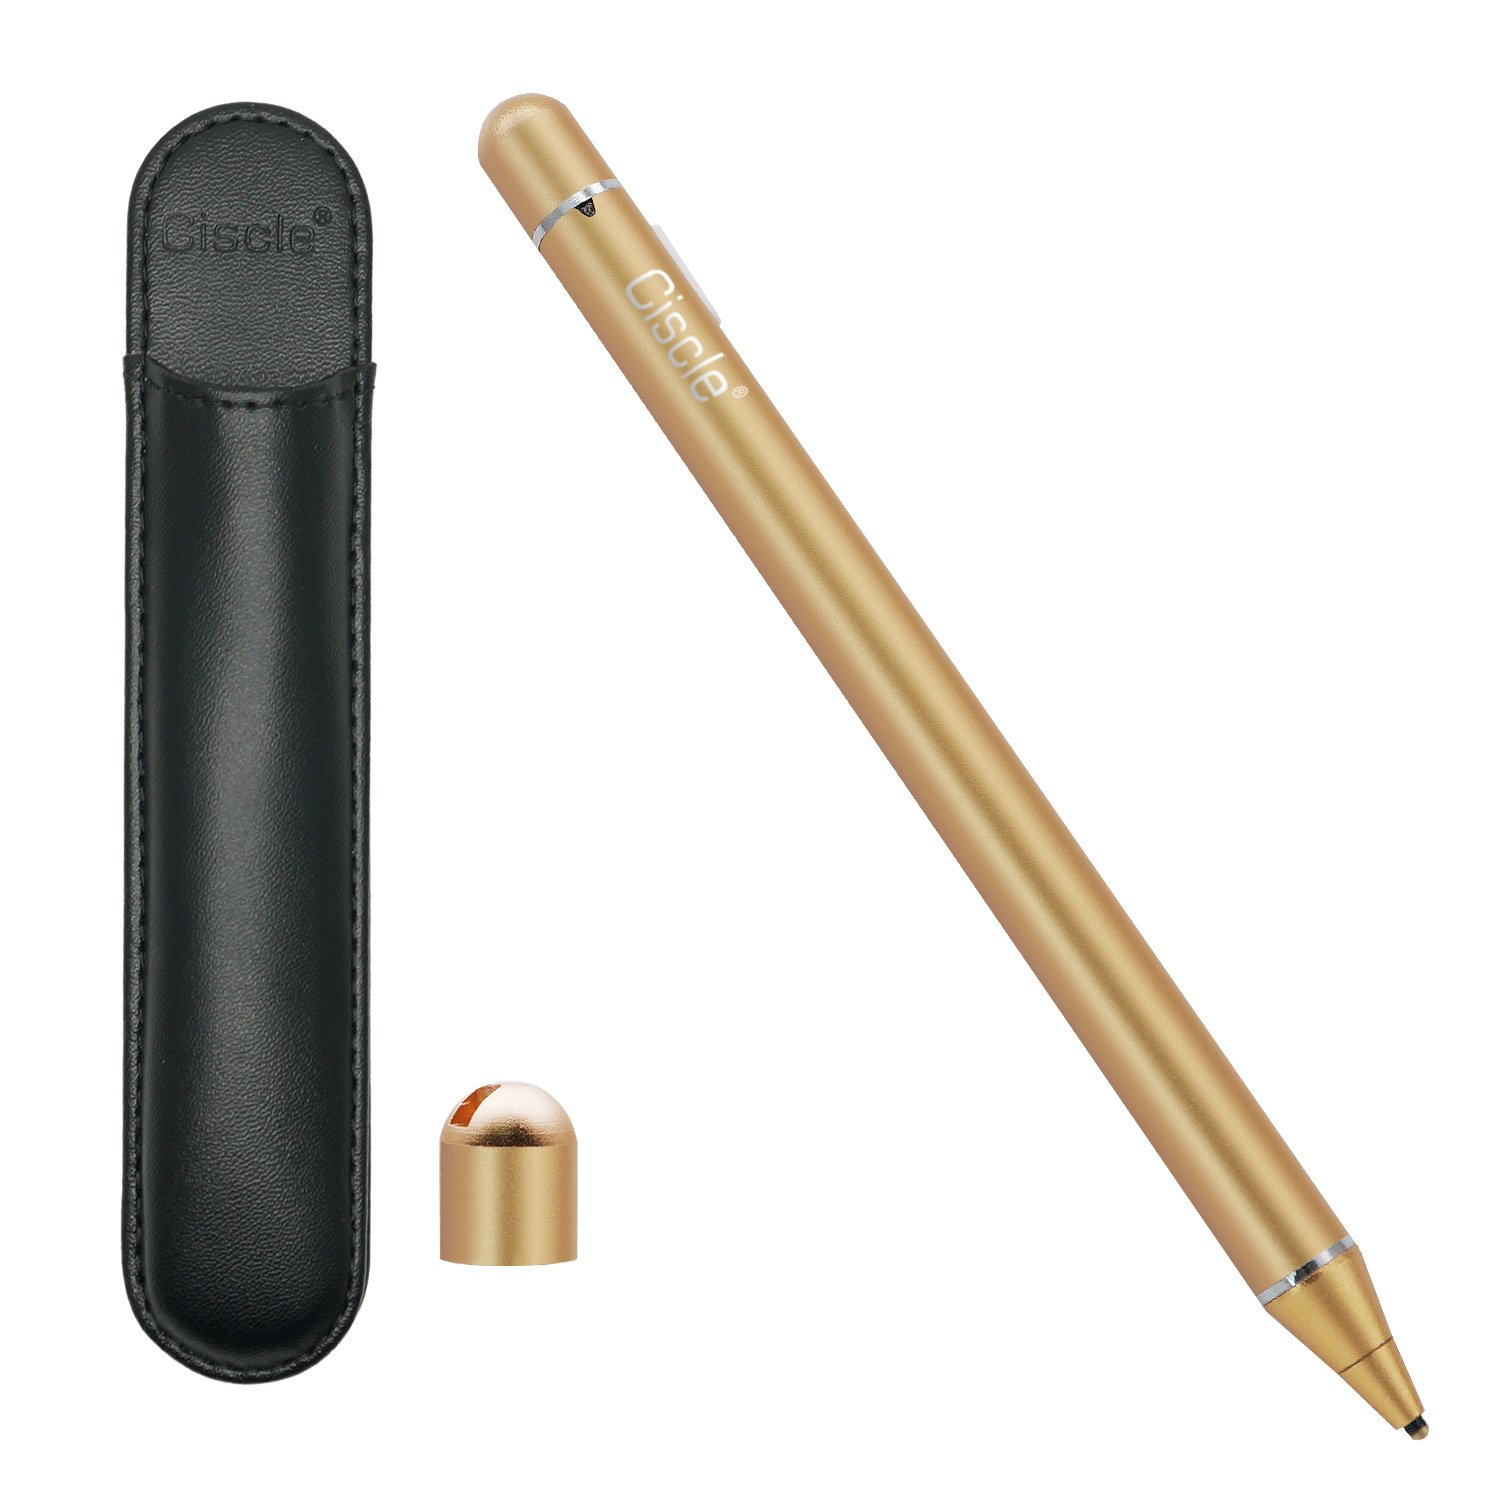 Ciscle [Electronic Stylus] Active Stylus Digital Pens with 1.8 mm Fine Point Copper Tip for iPhone/iPad/Tablet and Other Capacitive Touchscreens Devices, Good for Drawing and Handwriting (Gold)